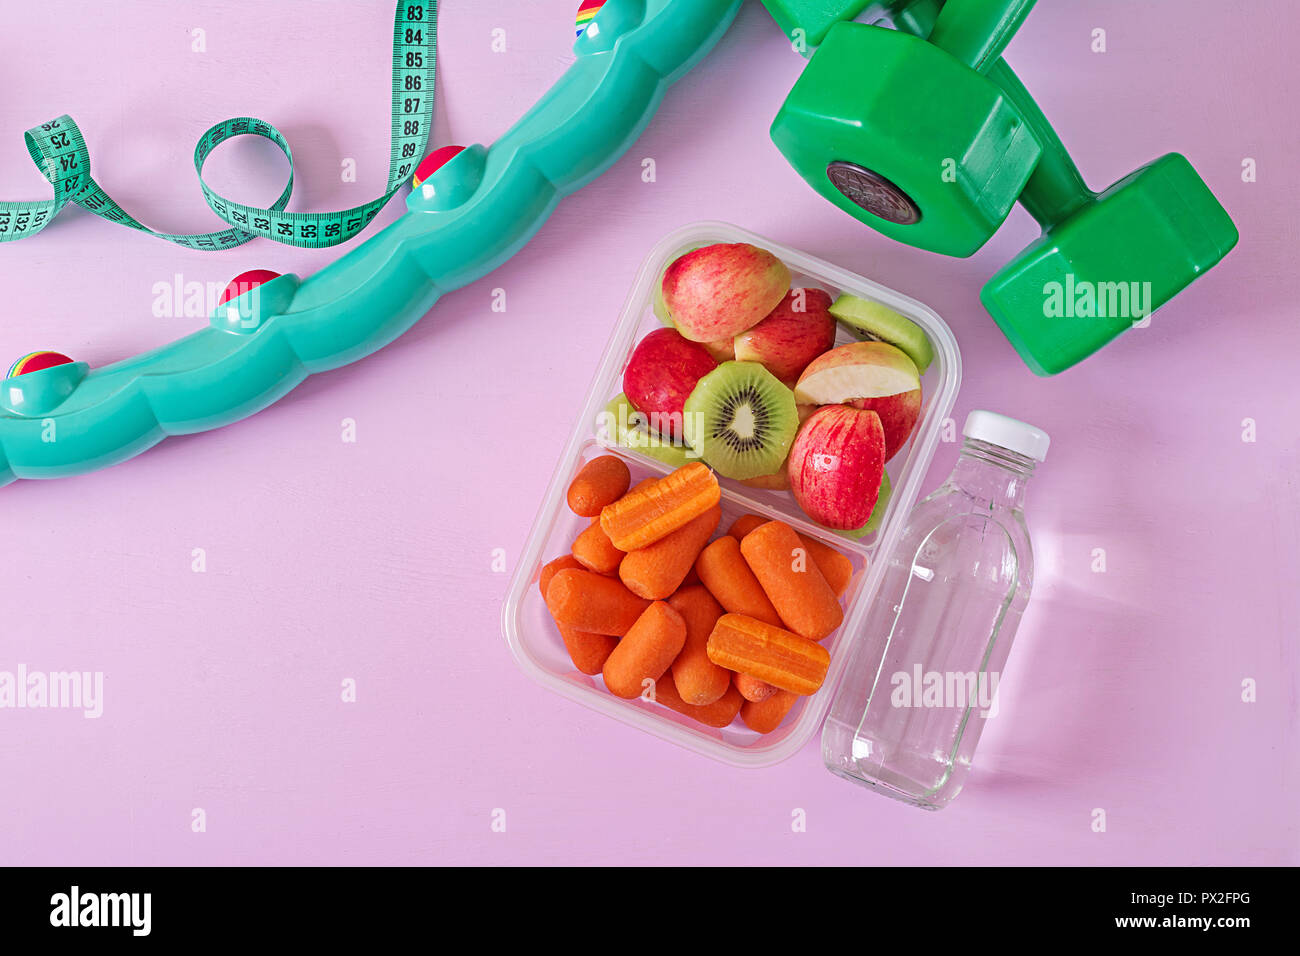 Fitness equipment. Healthy food. Concept healthy food and sports lifestyle. Vegetarian lunch. Dumbbell, water, fruits on pink background. Top view. Fl Stock Photo